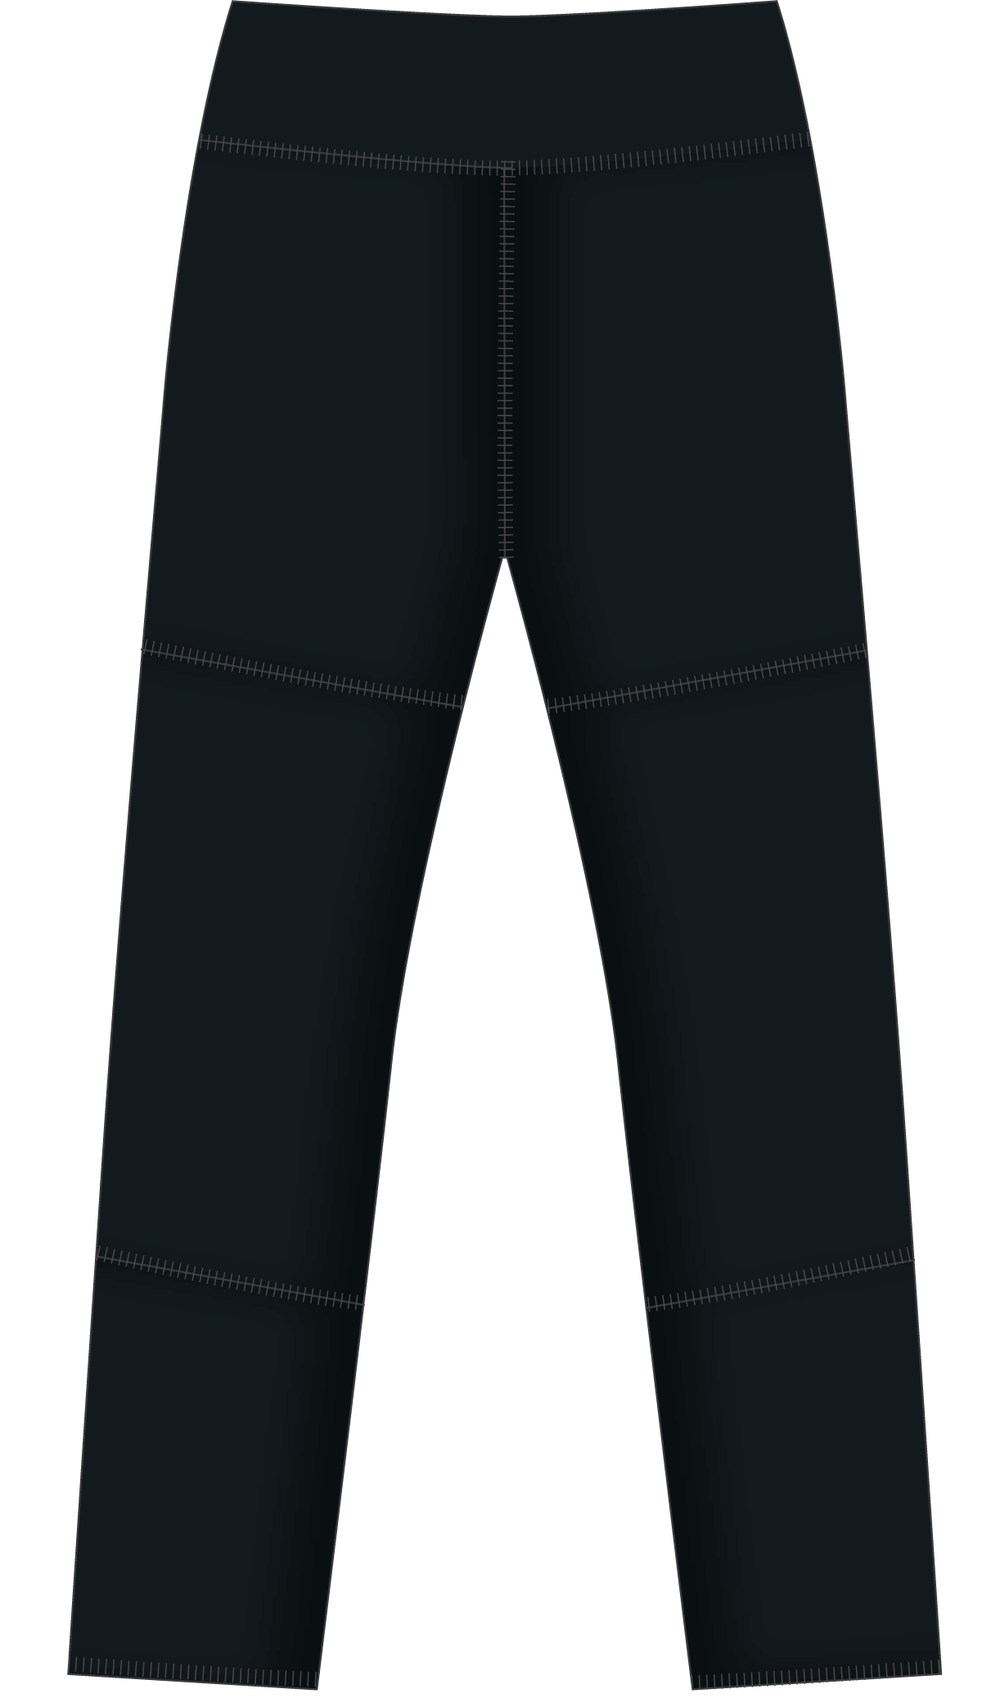 Image of Tamarack Skin Protection Pants with GlideWear TM technology